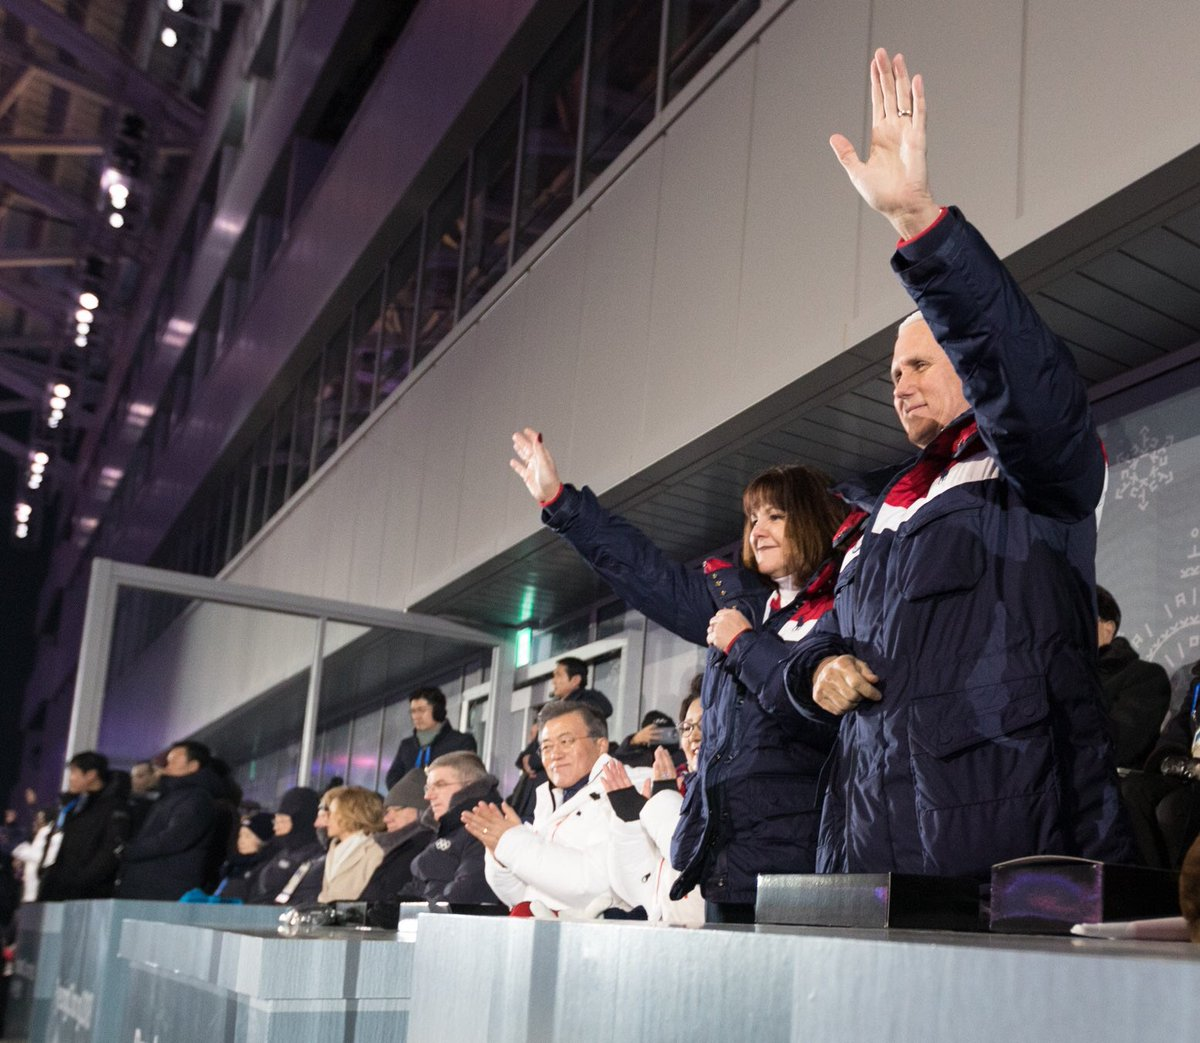 An incredible honor for Karen and me to lead the U.S. Delegation at the @Pyeongchang2018 Winter Olympic Games. The Opening Ceremony was extraordinary, and we wish ALL THE BEST for our @TeamUSA athletes. #TeamUSA #VPinAsia